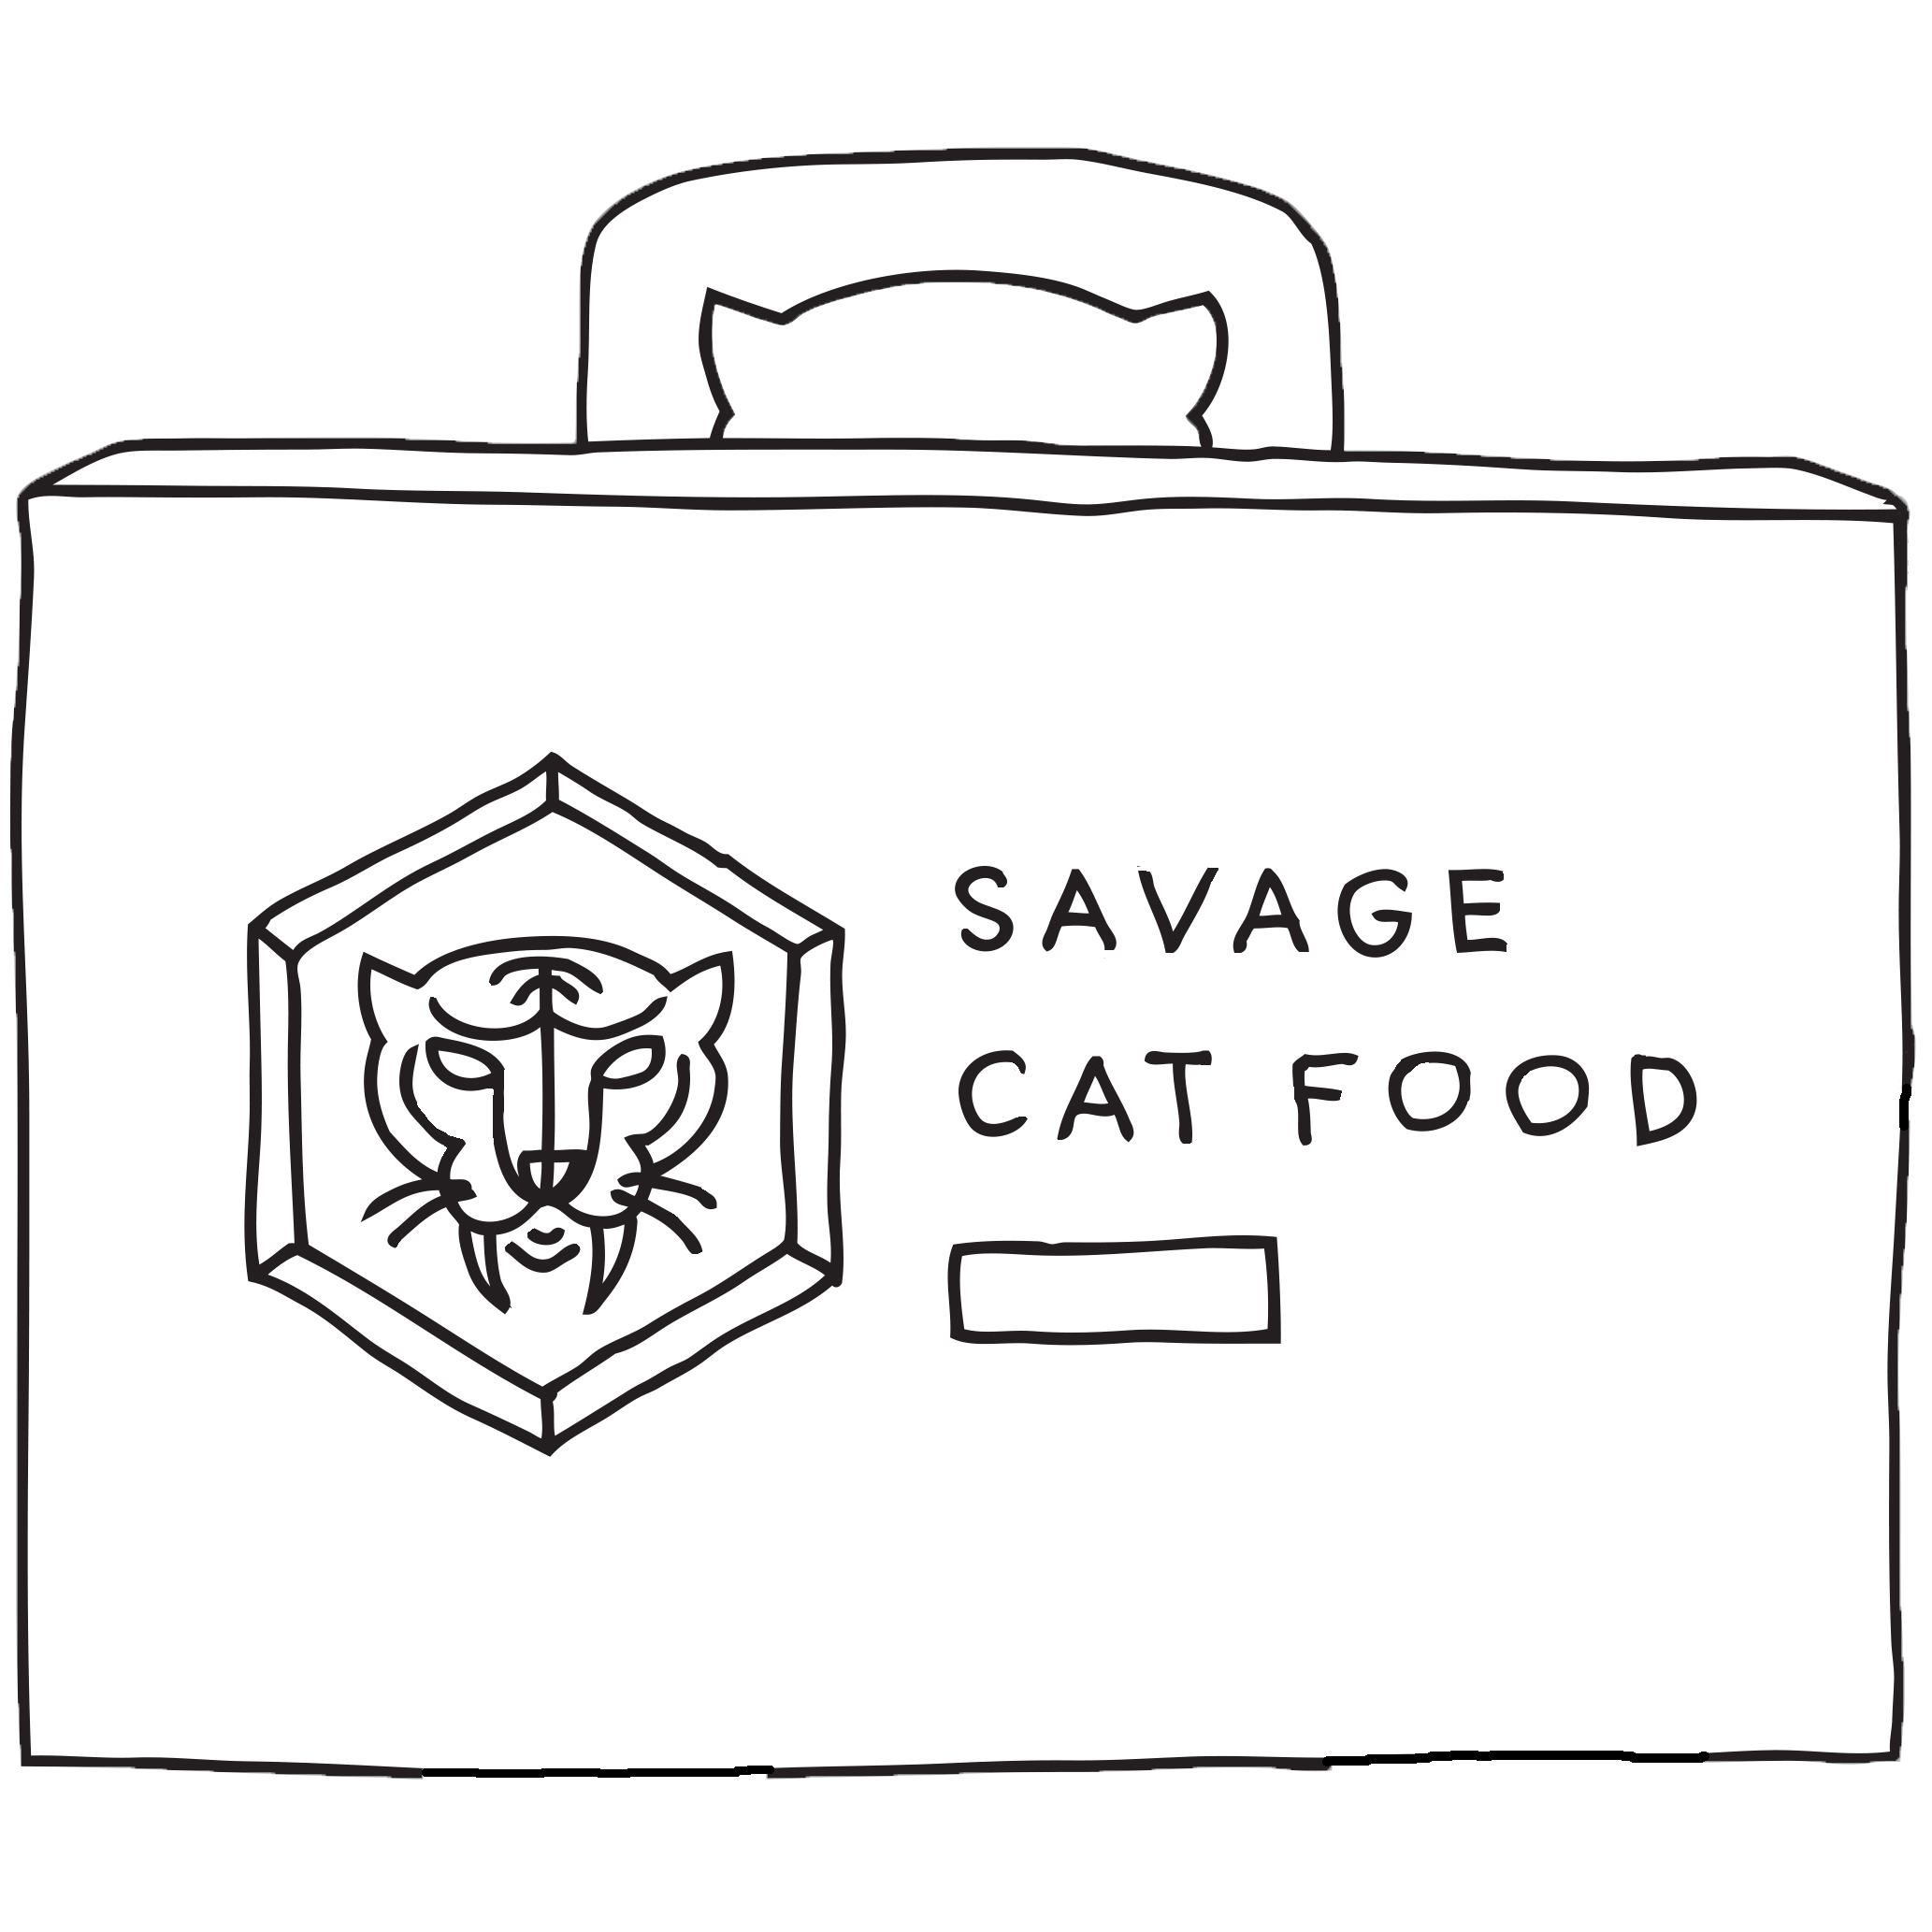 Savage Cat Food Increase Your Cat S Health And